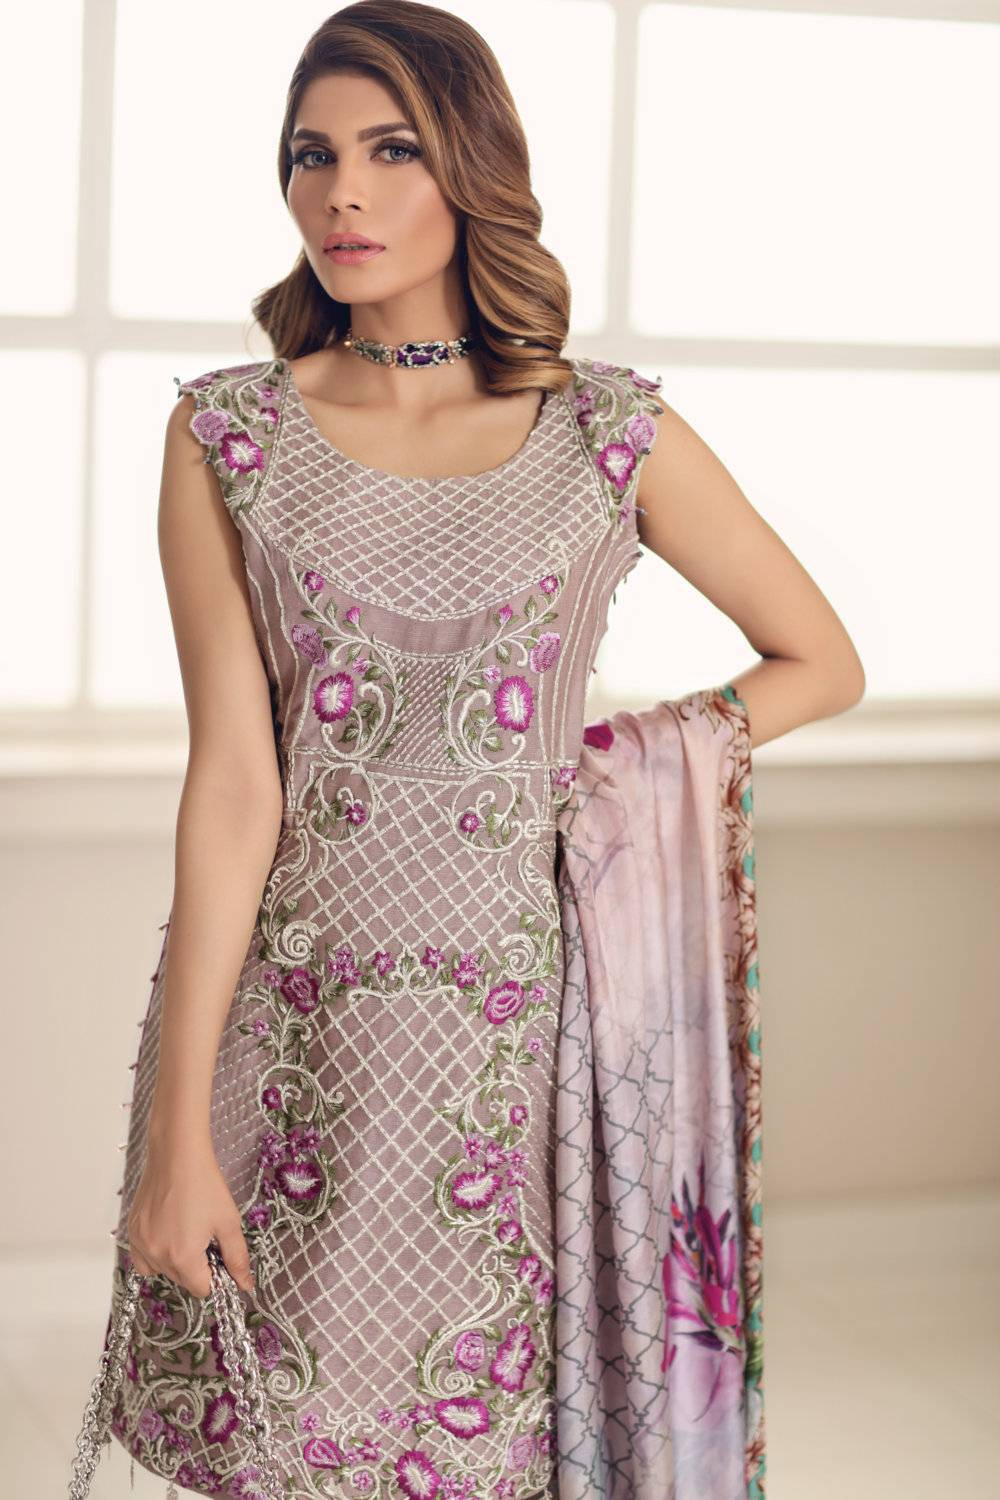 Noor by Saadia Asad Embroidered Cotton Unstitched 3 Piece Suit SA17E2 02